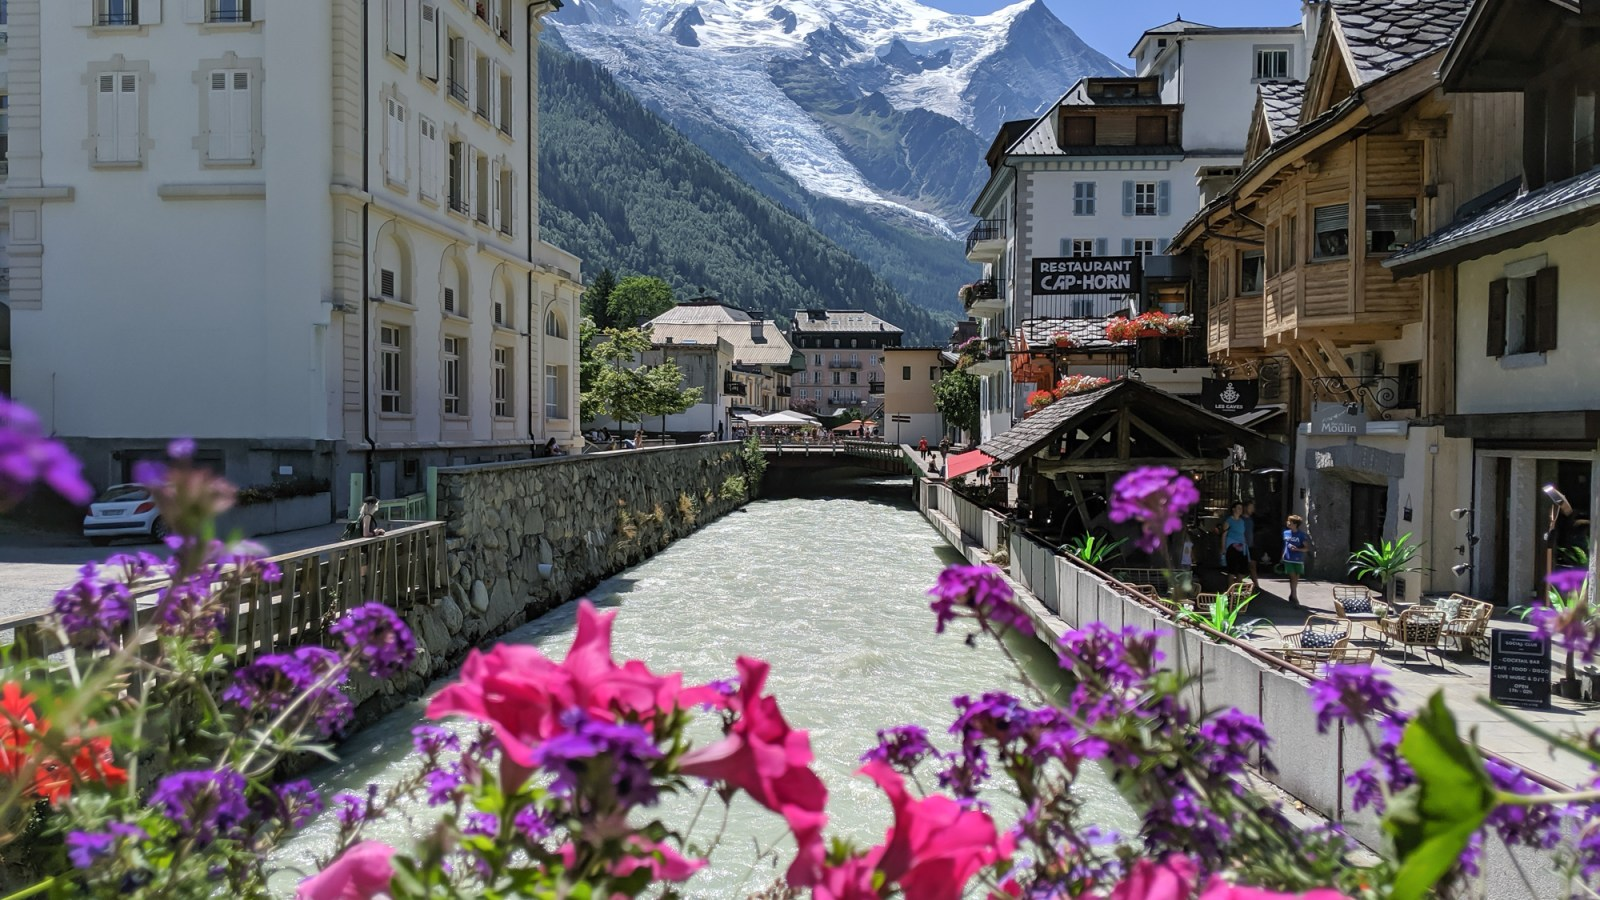 Awesome things to do in Chamonix in the summer: Alpine bucket list / hiking, museums, mountains, water sports, outdoor adventures, top attractions, and more / What to do in chamonix in the summer #chamonix #france #Montblanc #tourdumontblanc #frenchalps #alps